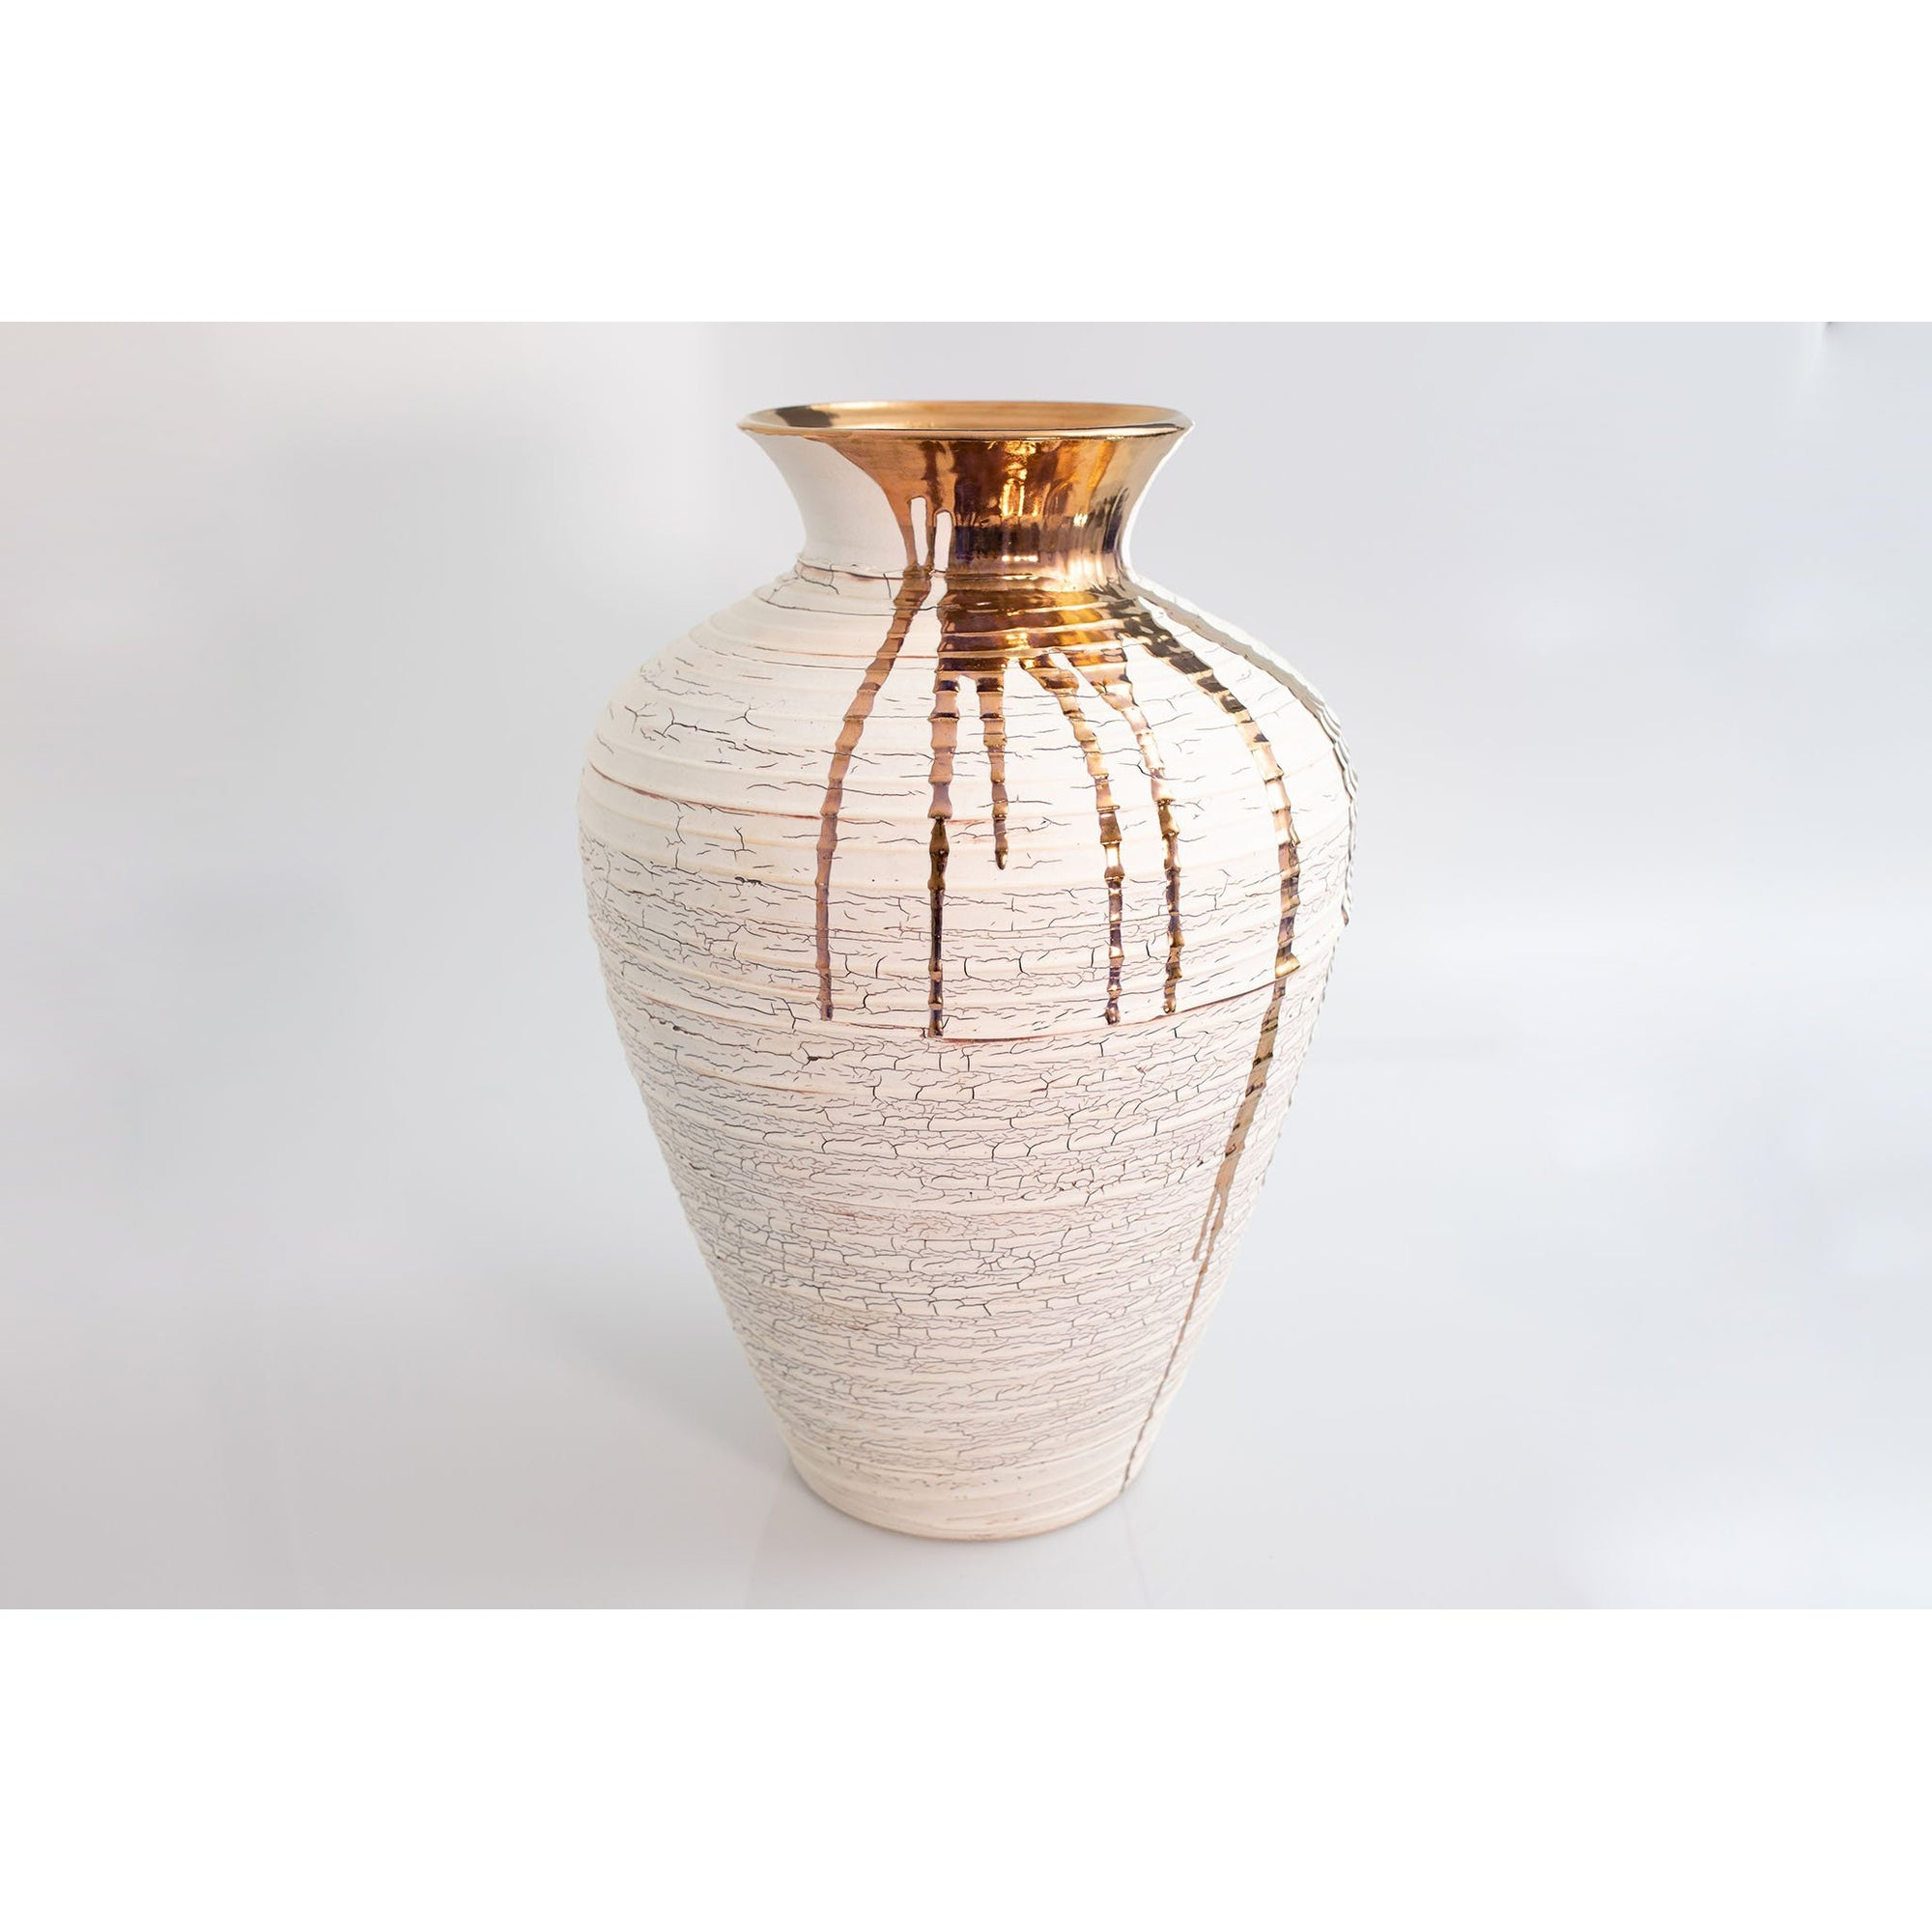 AMC95 Large Crackle Vase with Copper Lustre